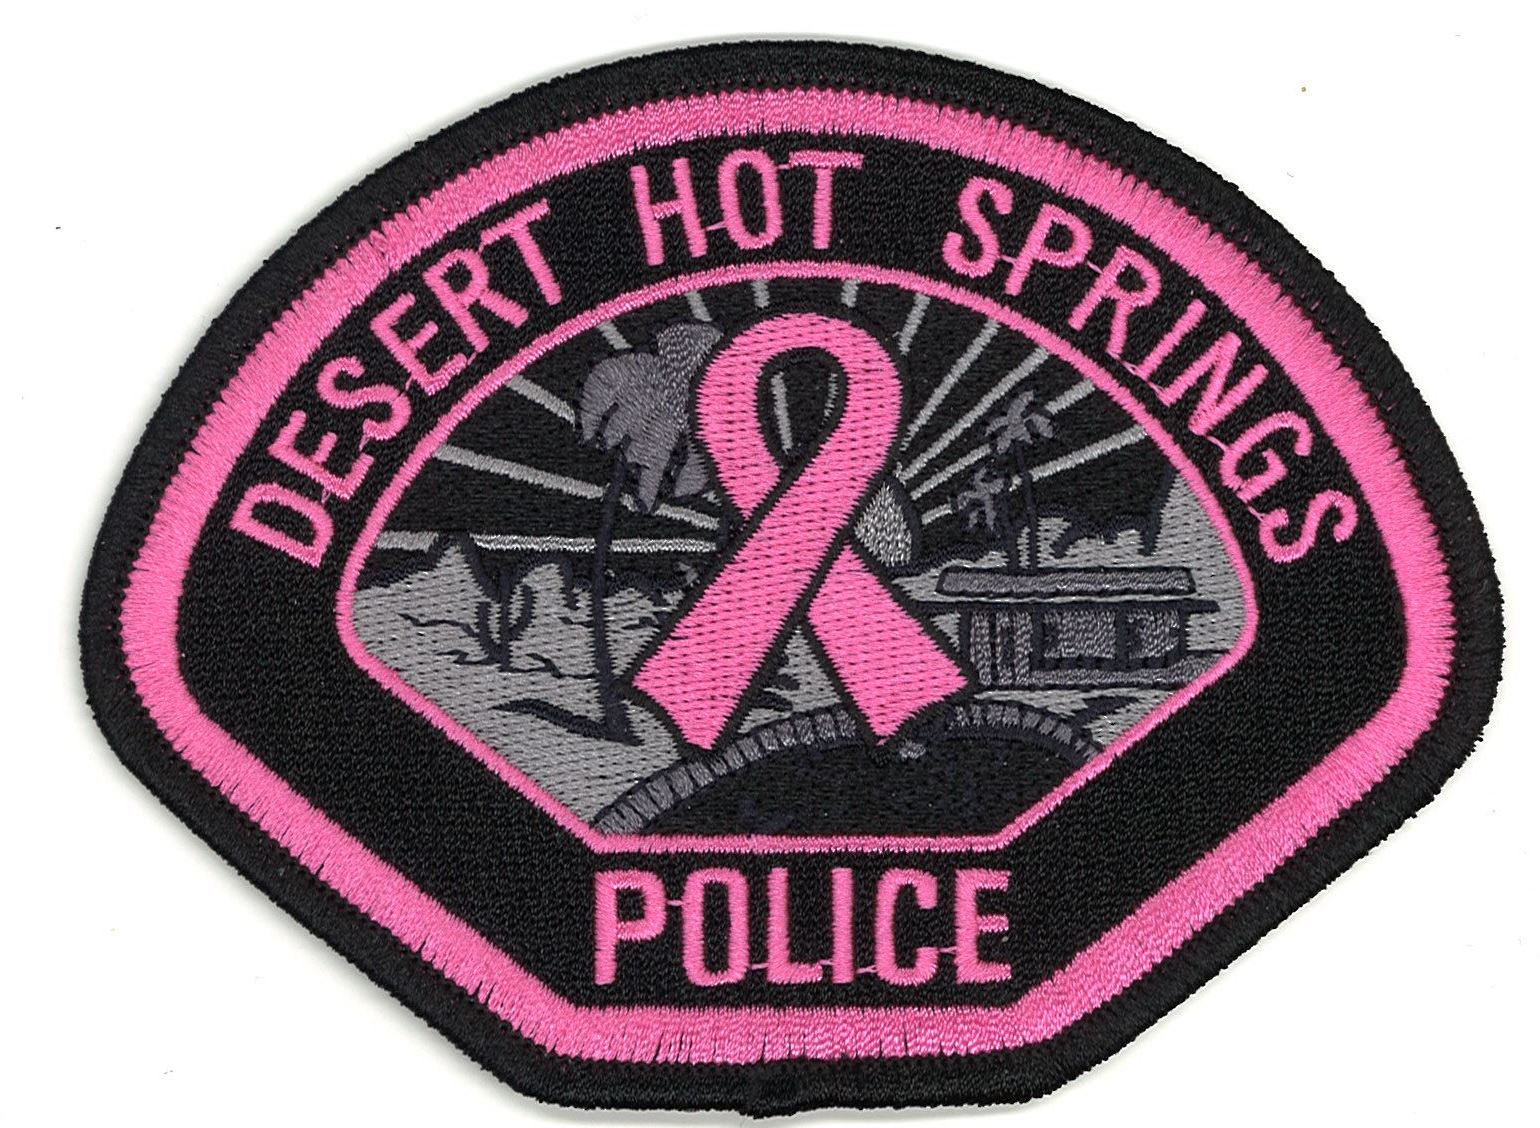 DHS Pink Patch.jpg